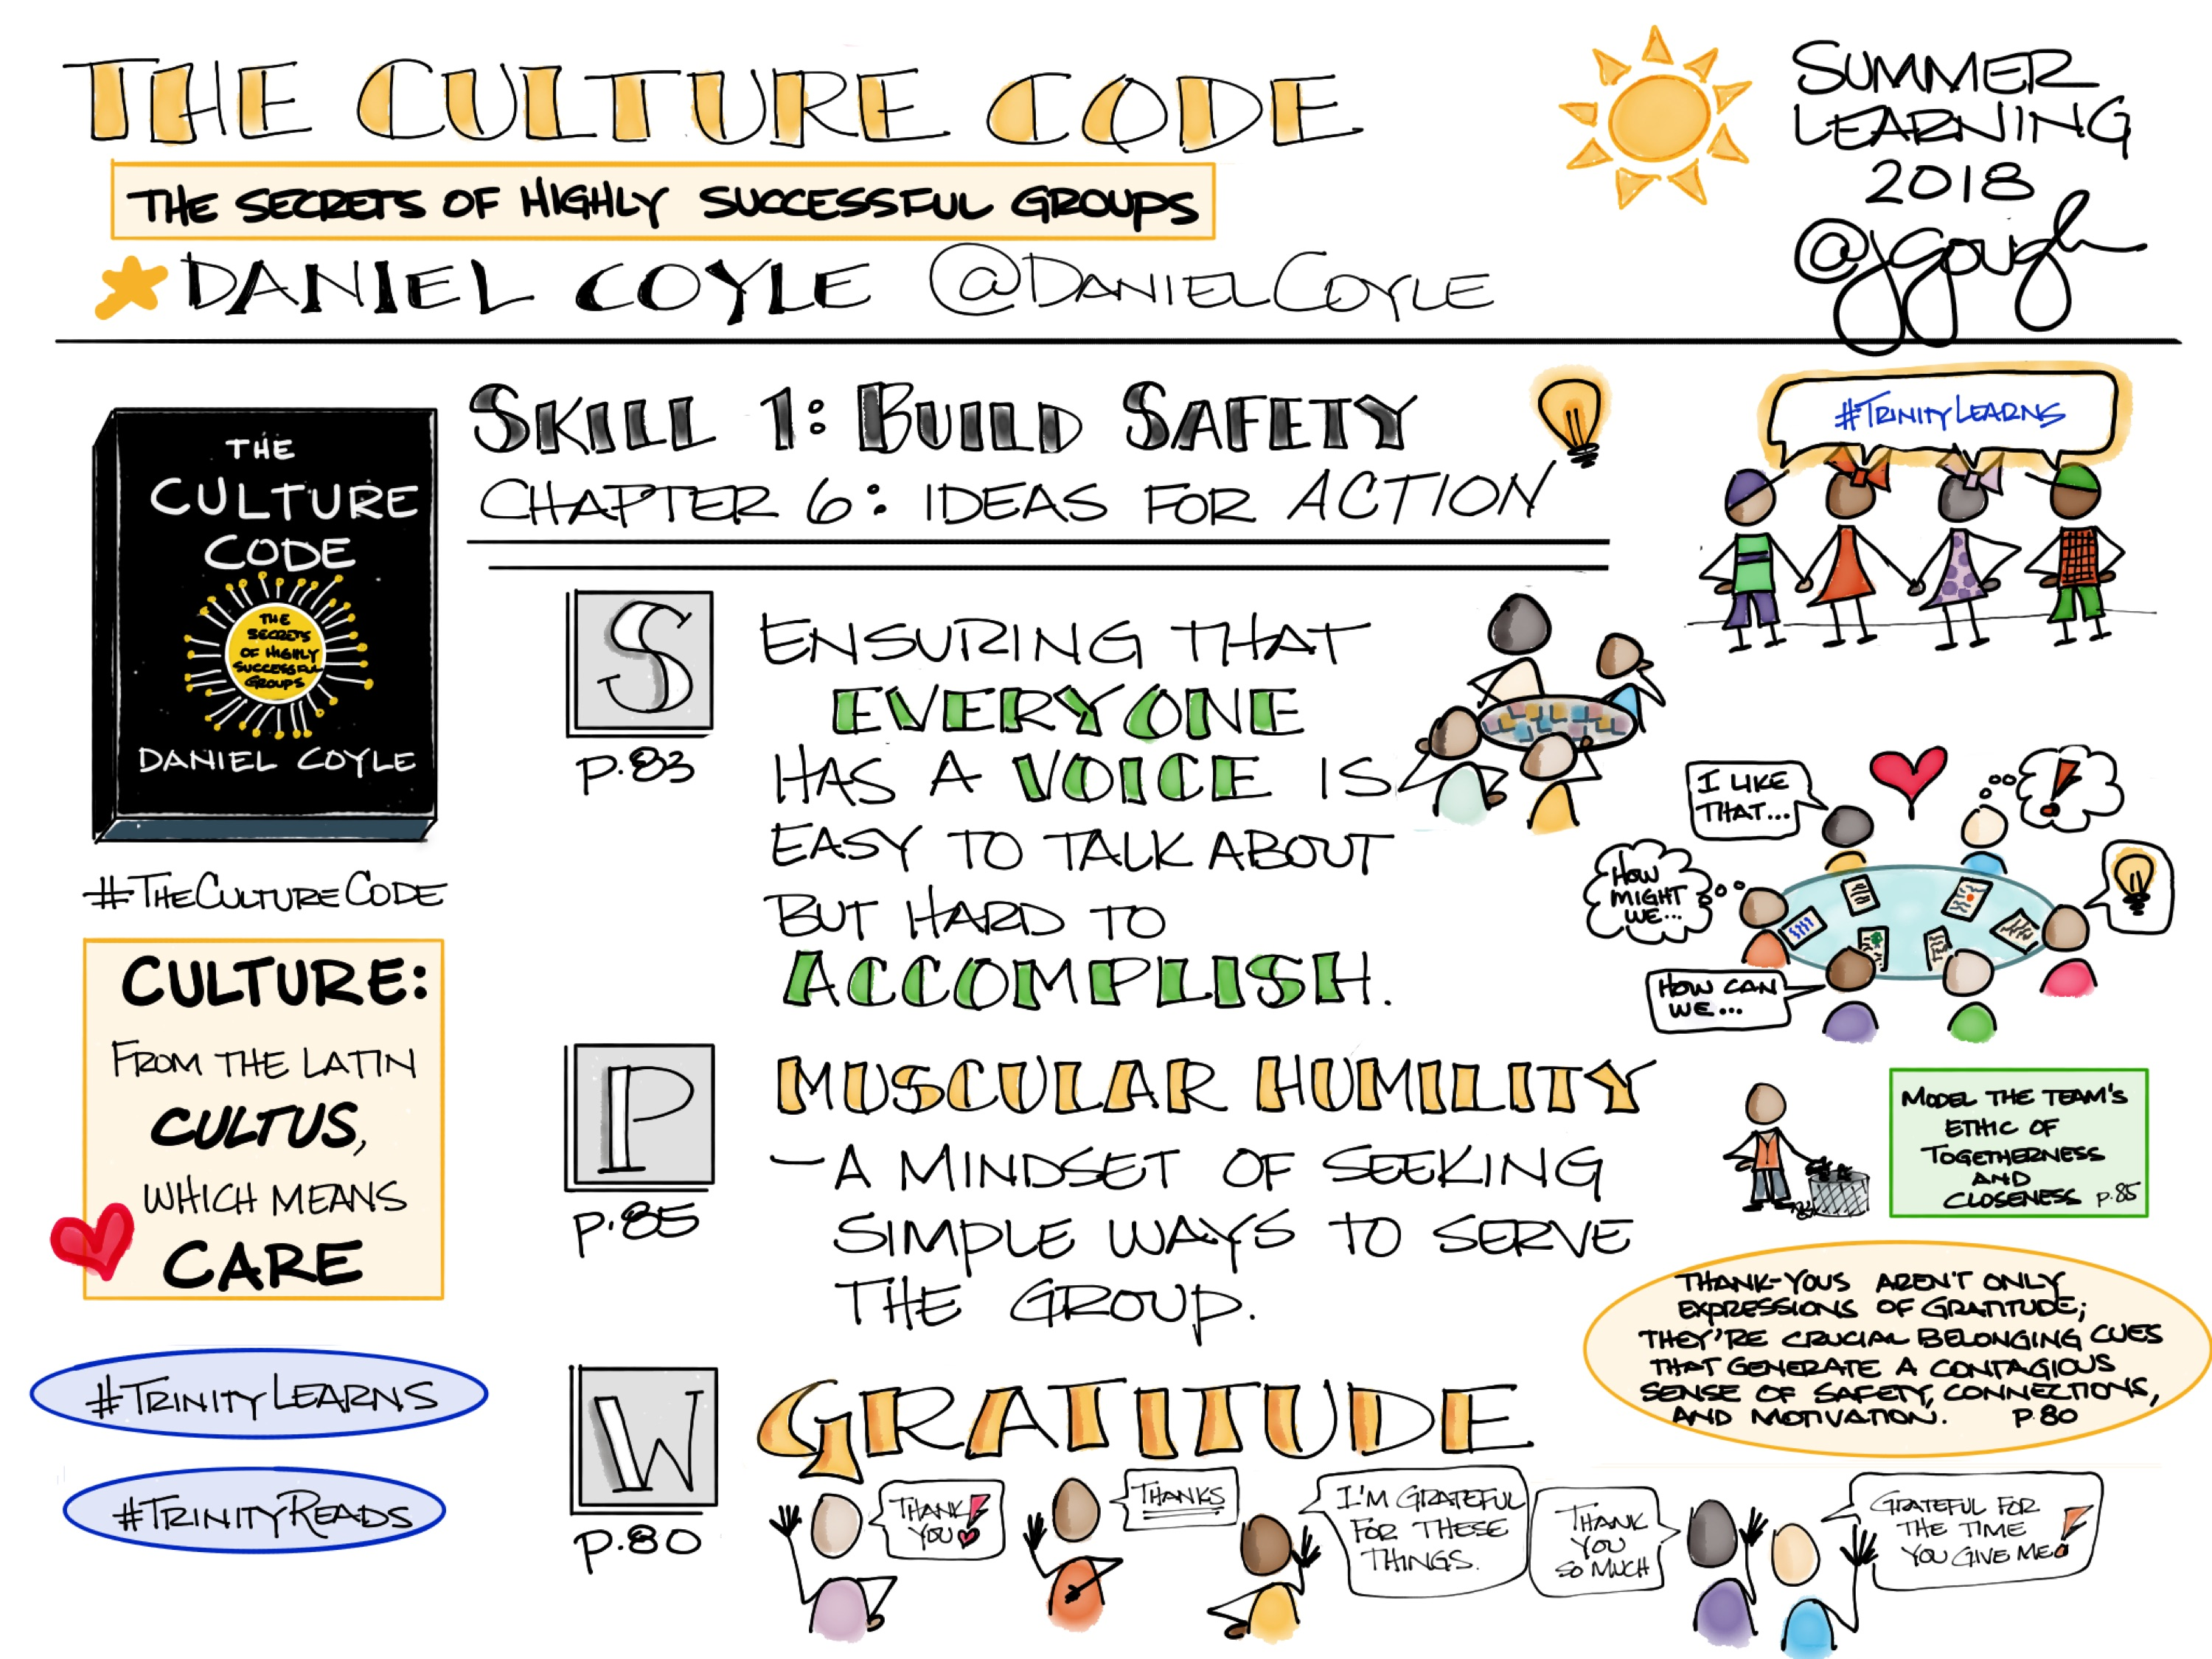 #TheCultureCode by @DanielCoyle Skill 1 Build Safety Chapter 6: Ideas for Action #TrinityLearns Muscular humility (leadership), gratitude, togetherness and closeness #TrinityReads